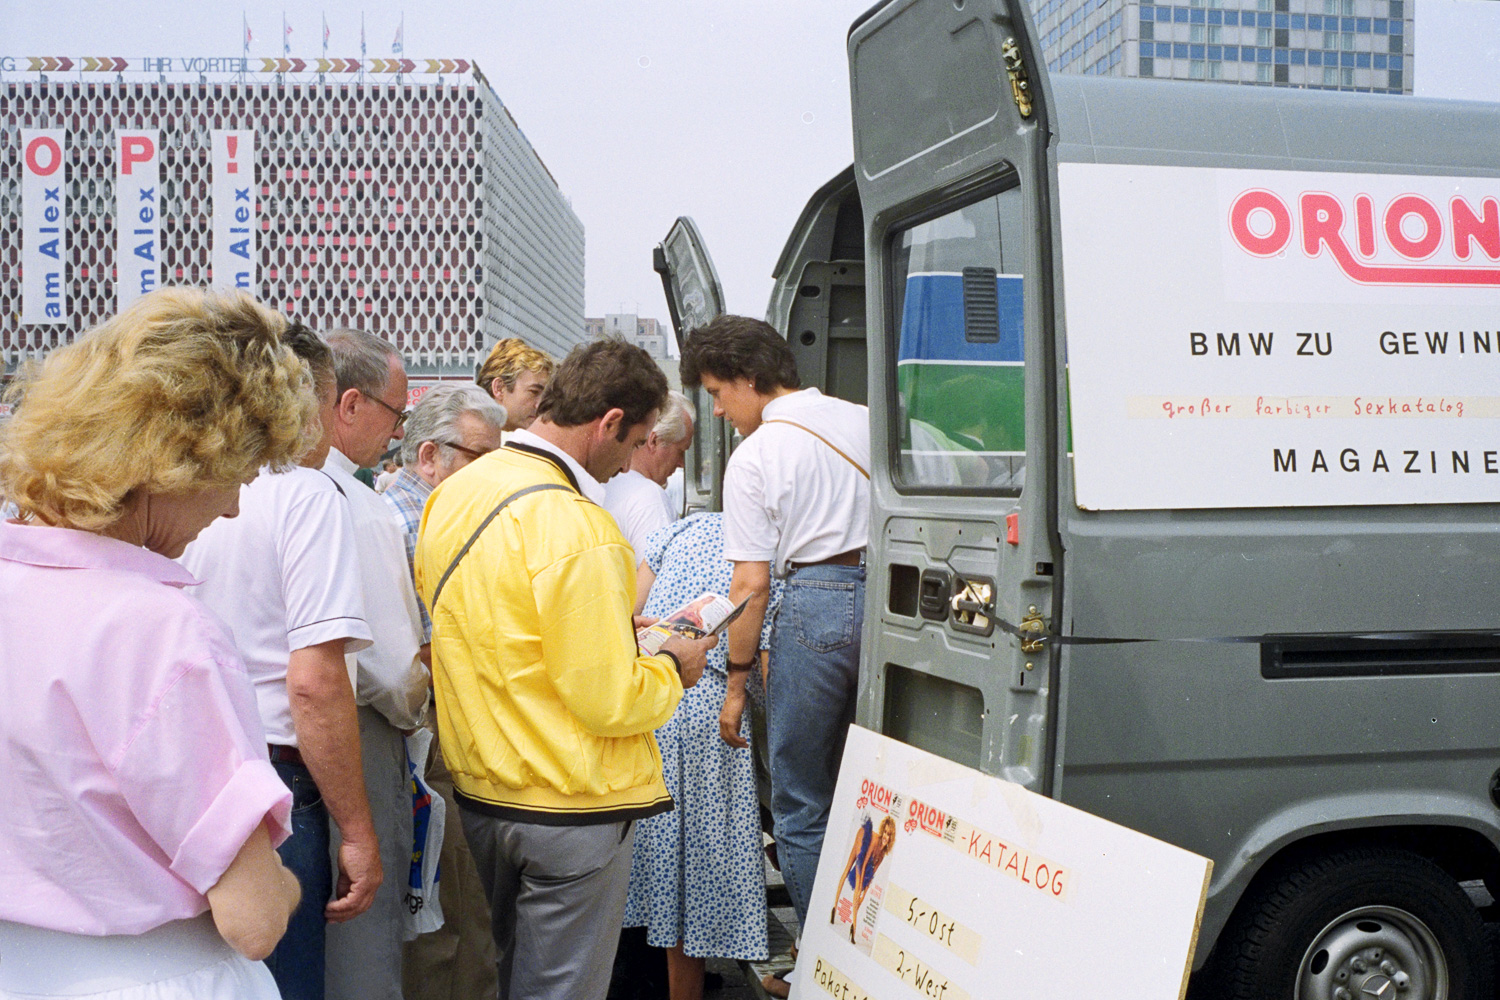 Alexanderplatz, East Berlin. Late June 1990. Pornography sales out of the back of a van.